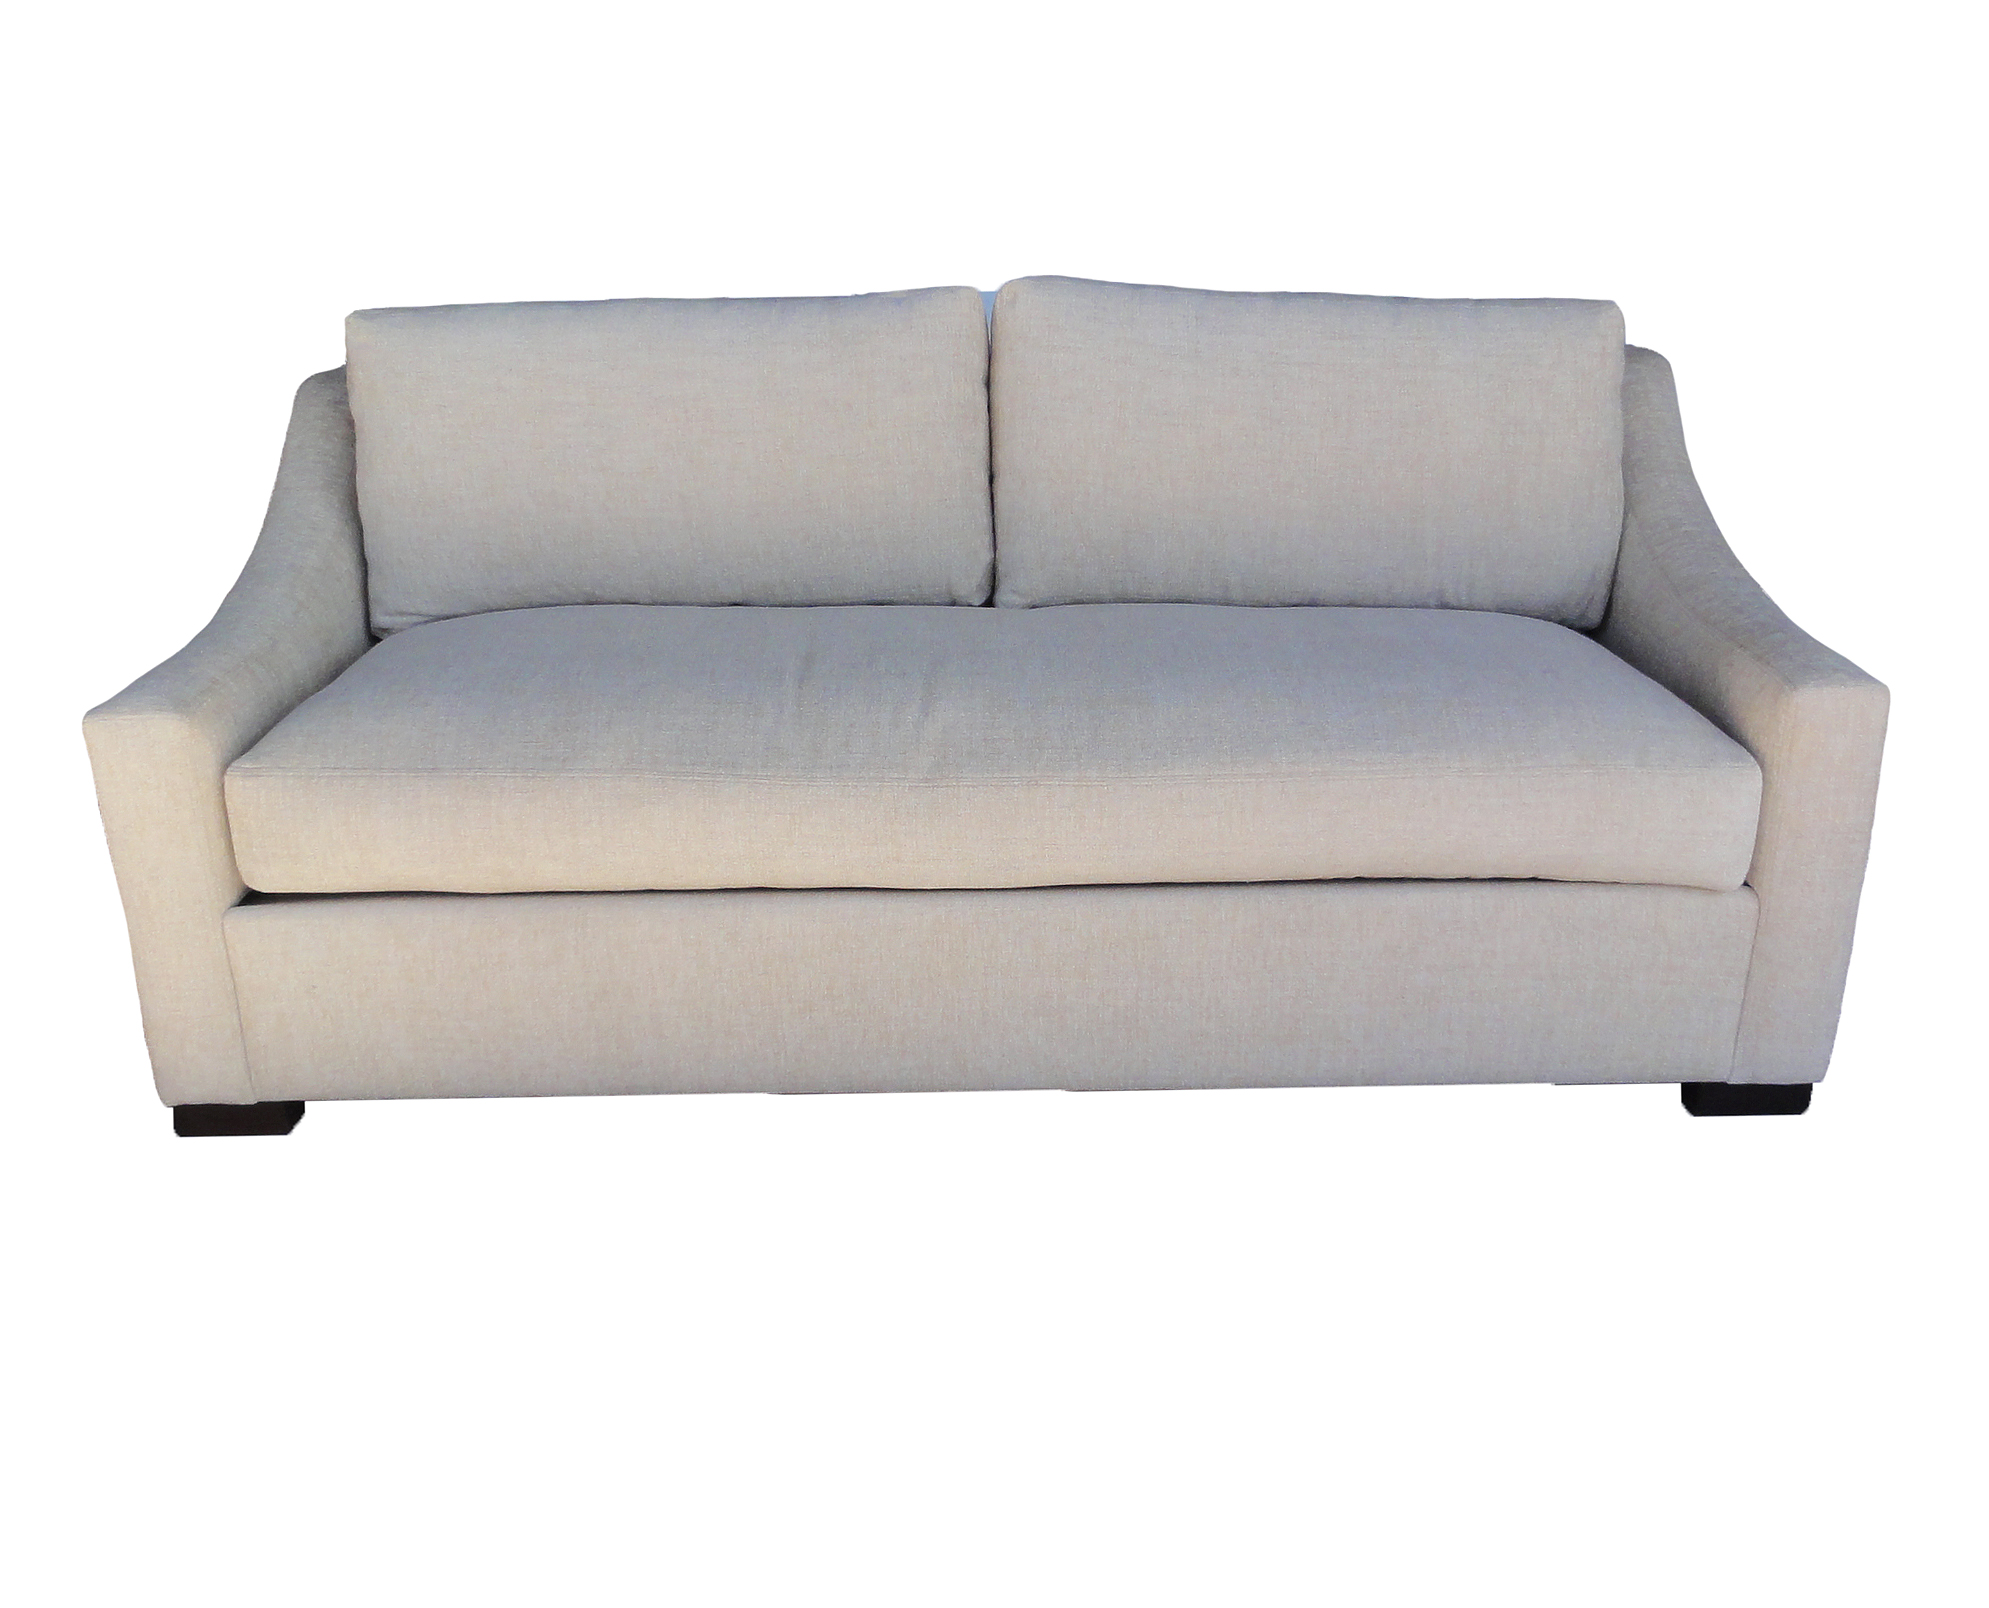 Brussels Slopped Arm Sofa santa barbara design center rugs and more sectional sofa couch loveseat